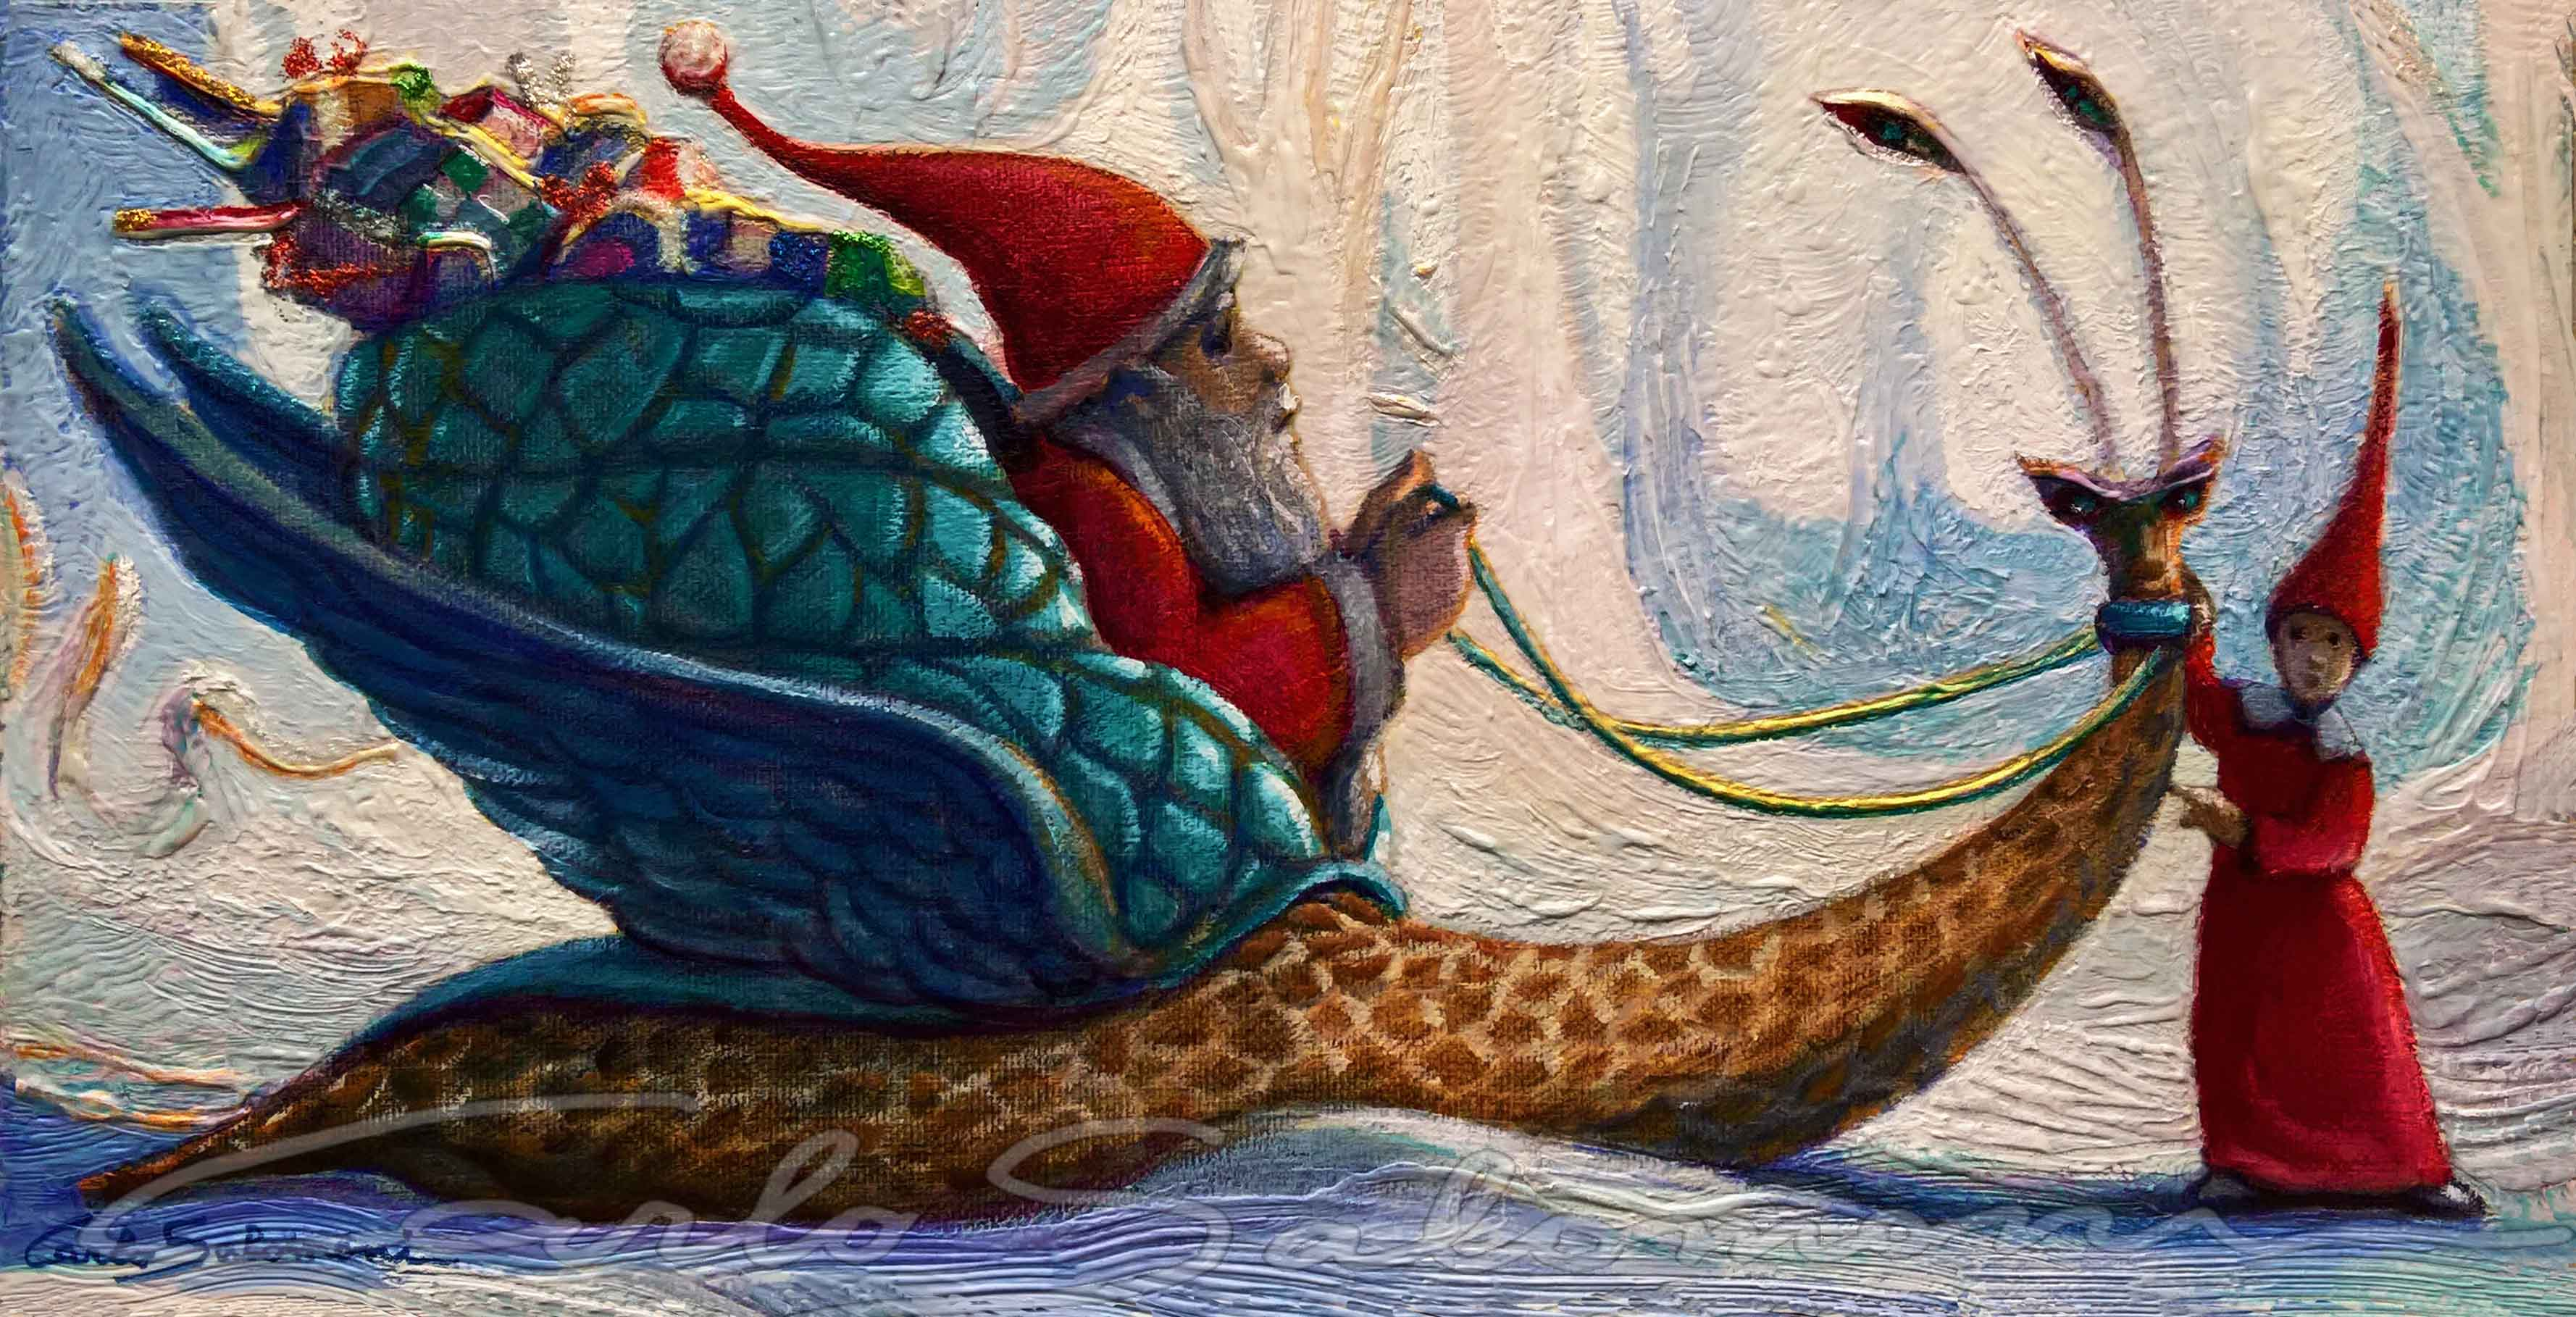 THE MAGICAL SNAIL OF SANTA CLAUS